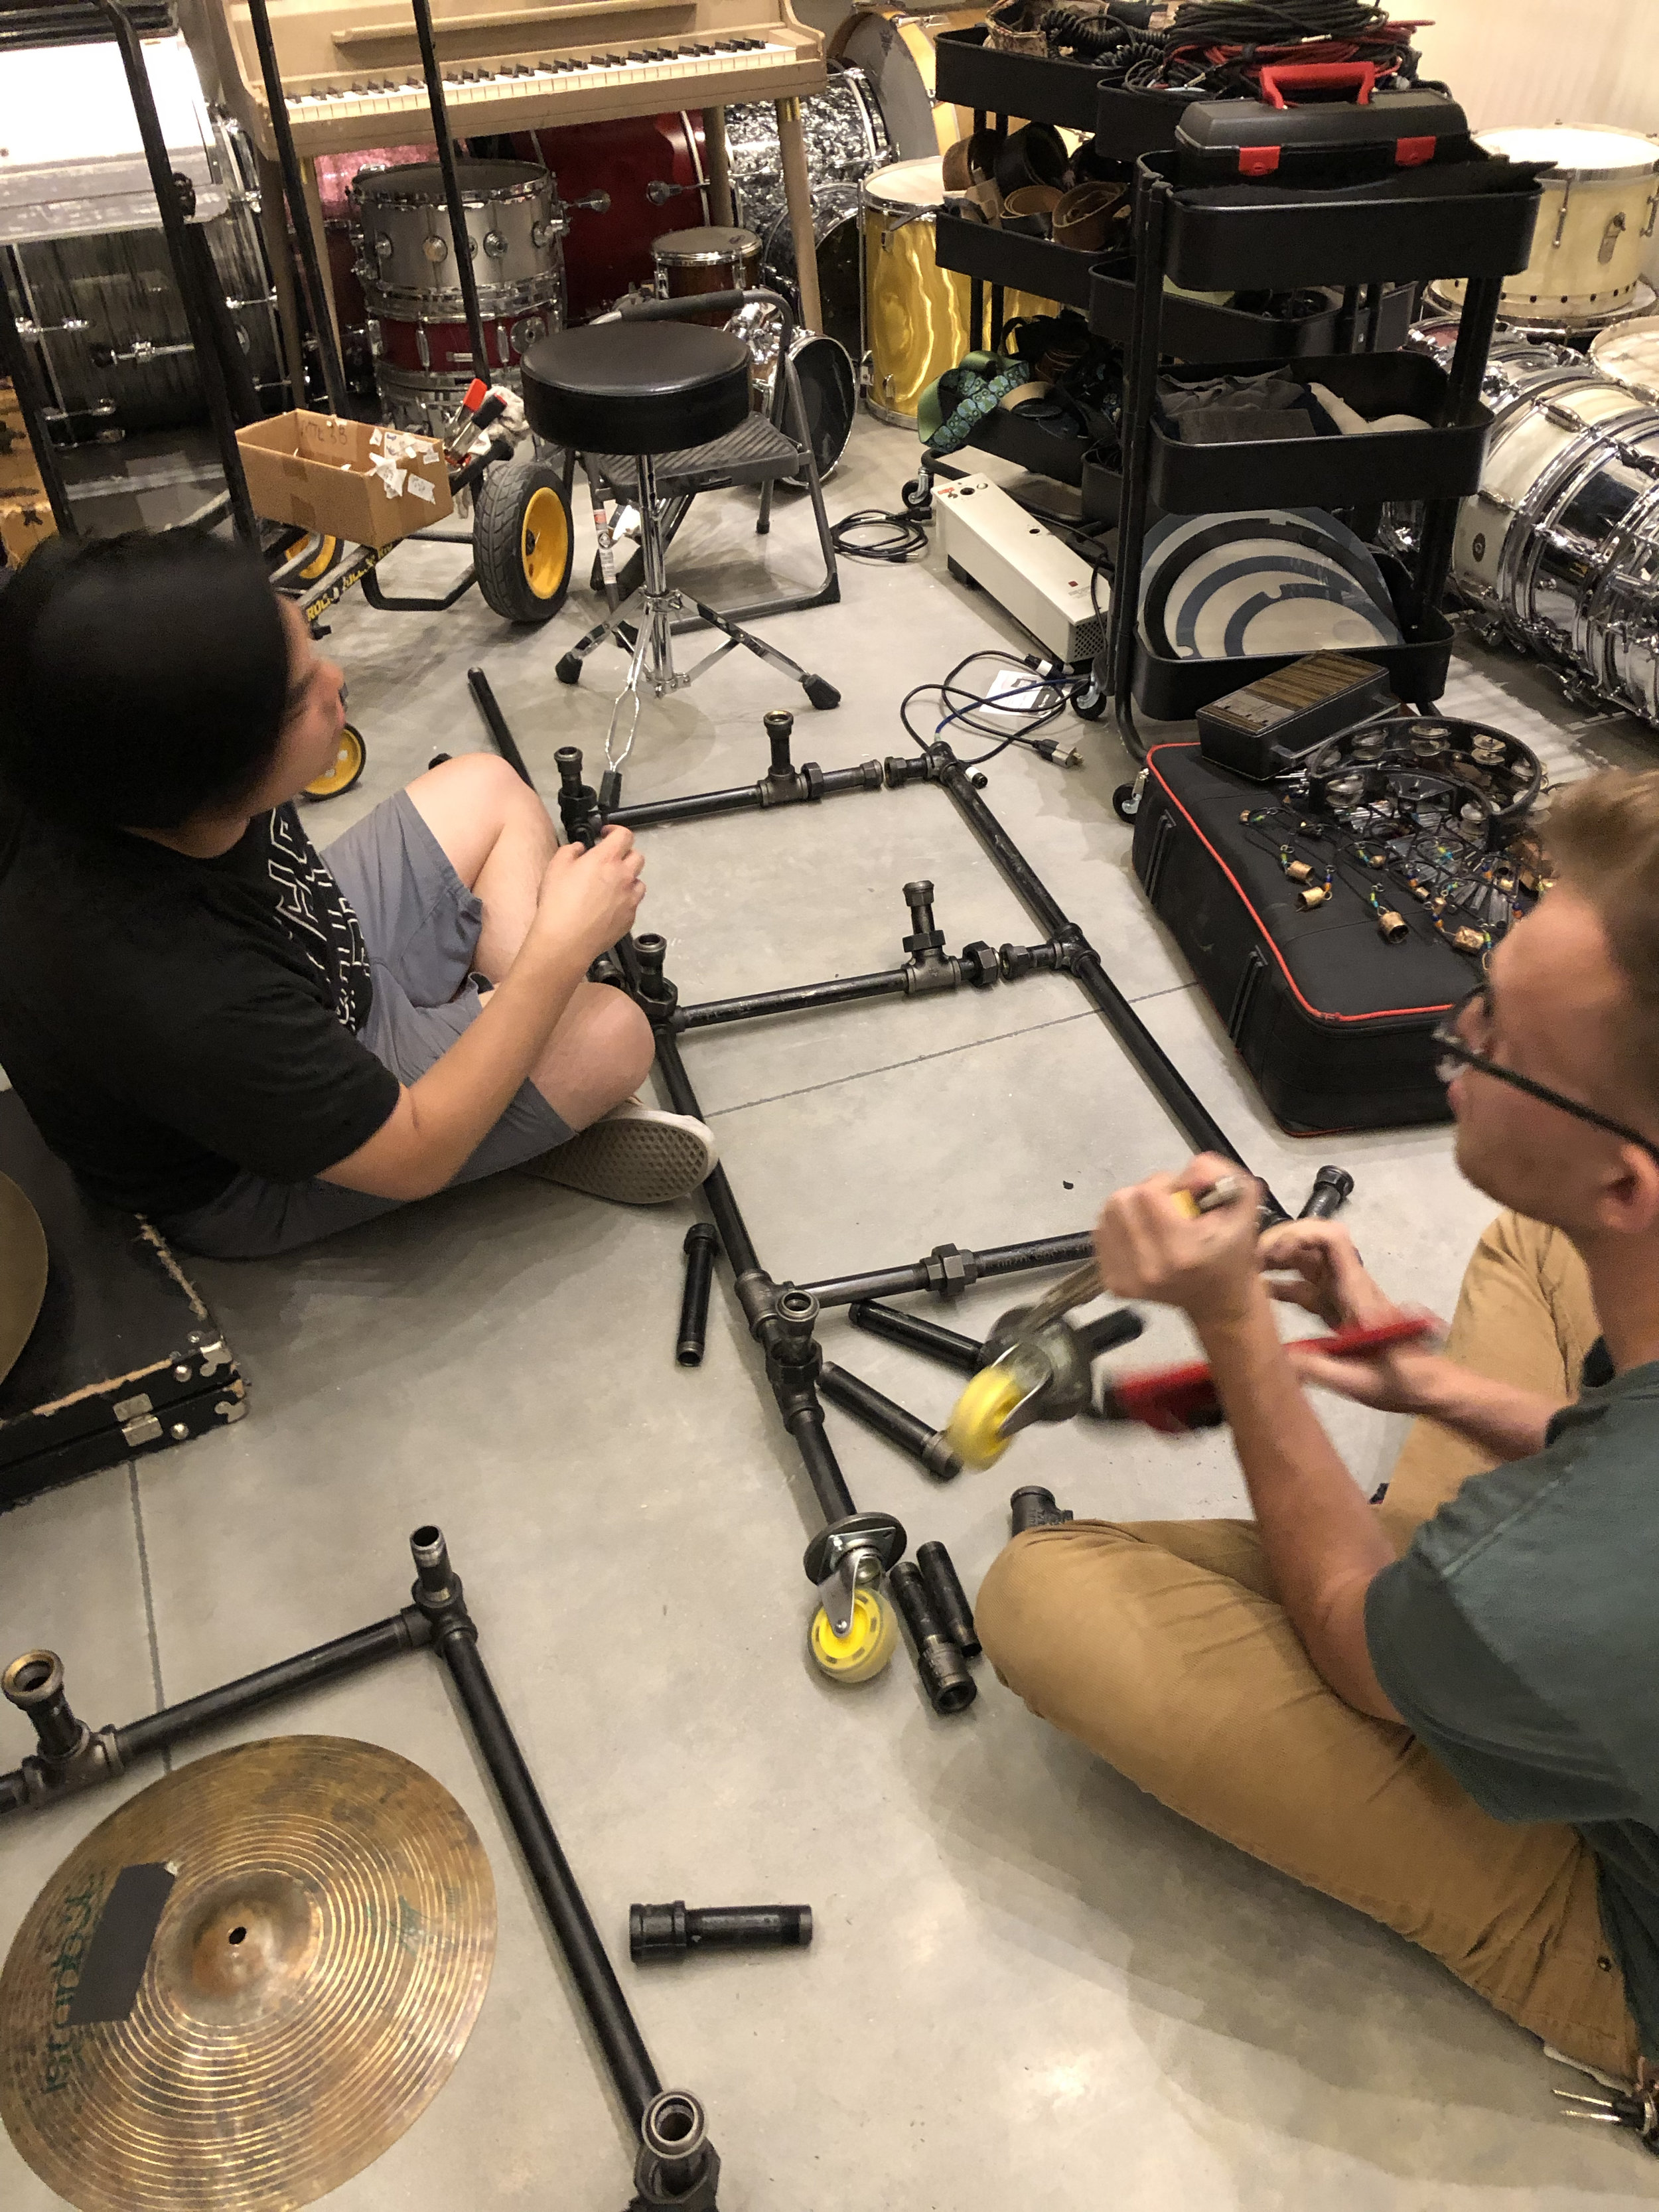 Trying to find a way to store and move cymbals around was proving difficult. We had them stored in multiple cymbal bags but we wanted a solution that would be mobile and hold all the cymbals. Ryan and Dan took our old rolling drum rack apart and got to work on a solution.